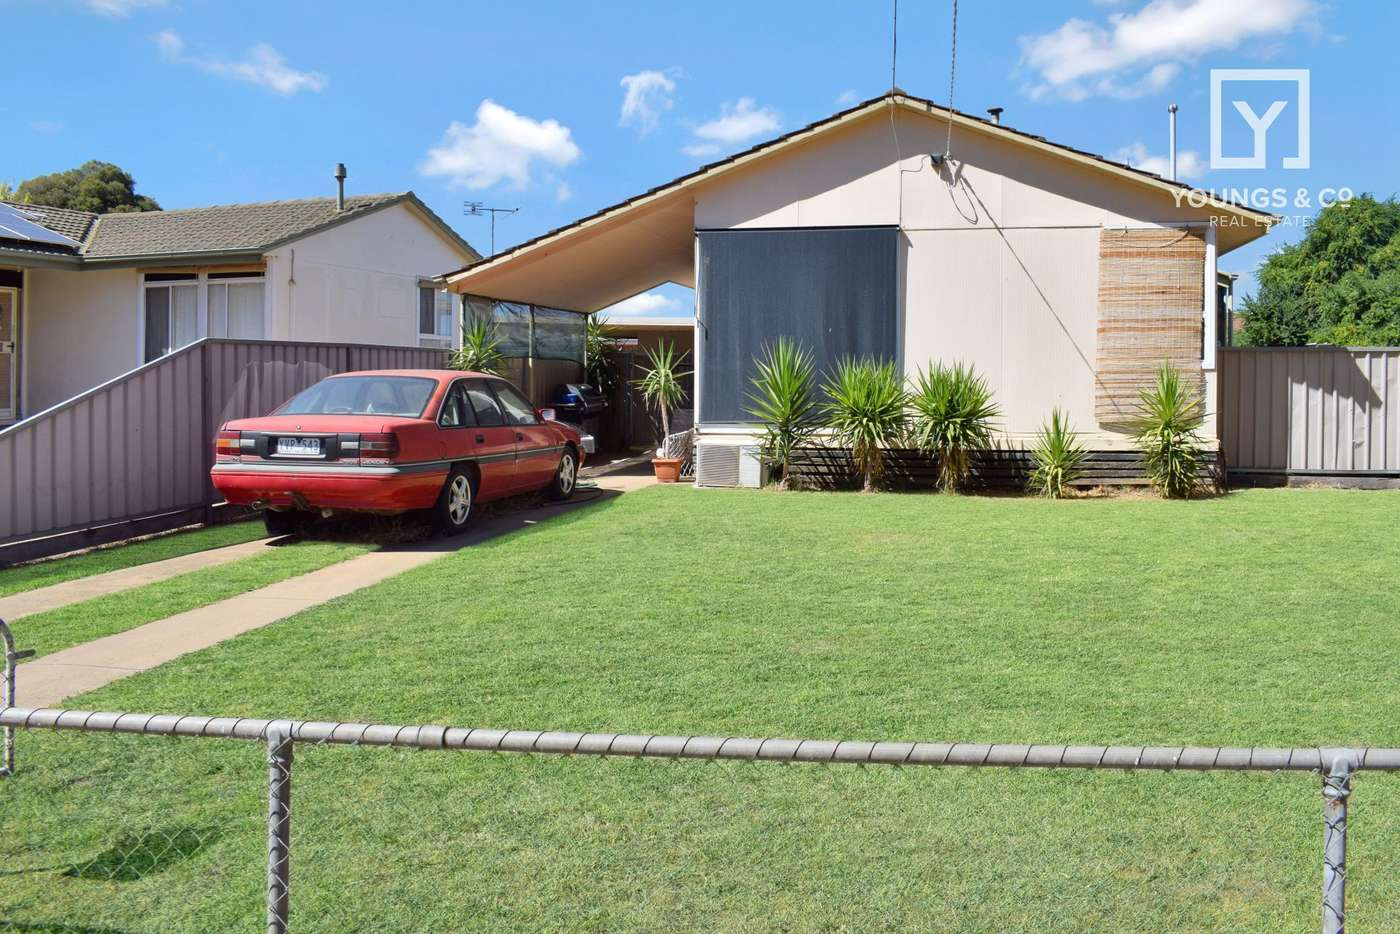 Main view of Homely house listing, 16 Forrest St, Kyabram VIC 3620